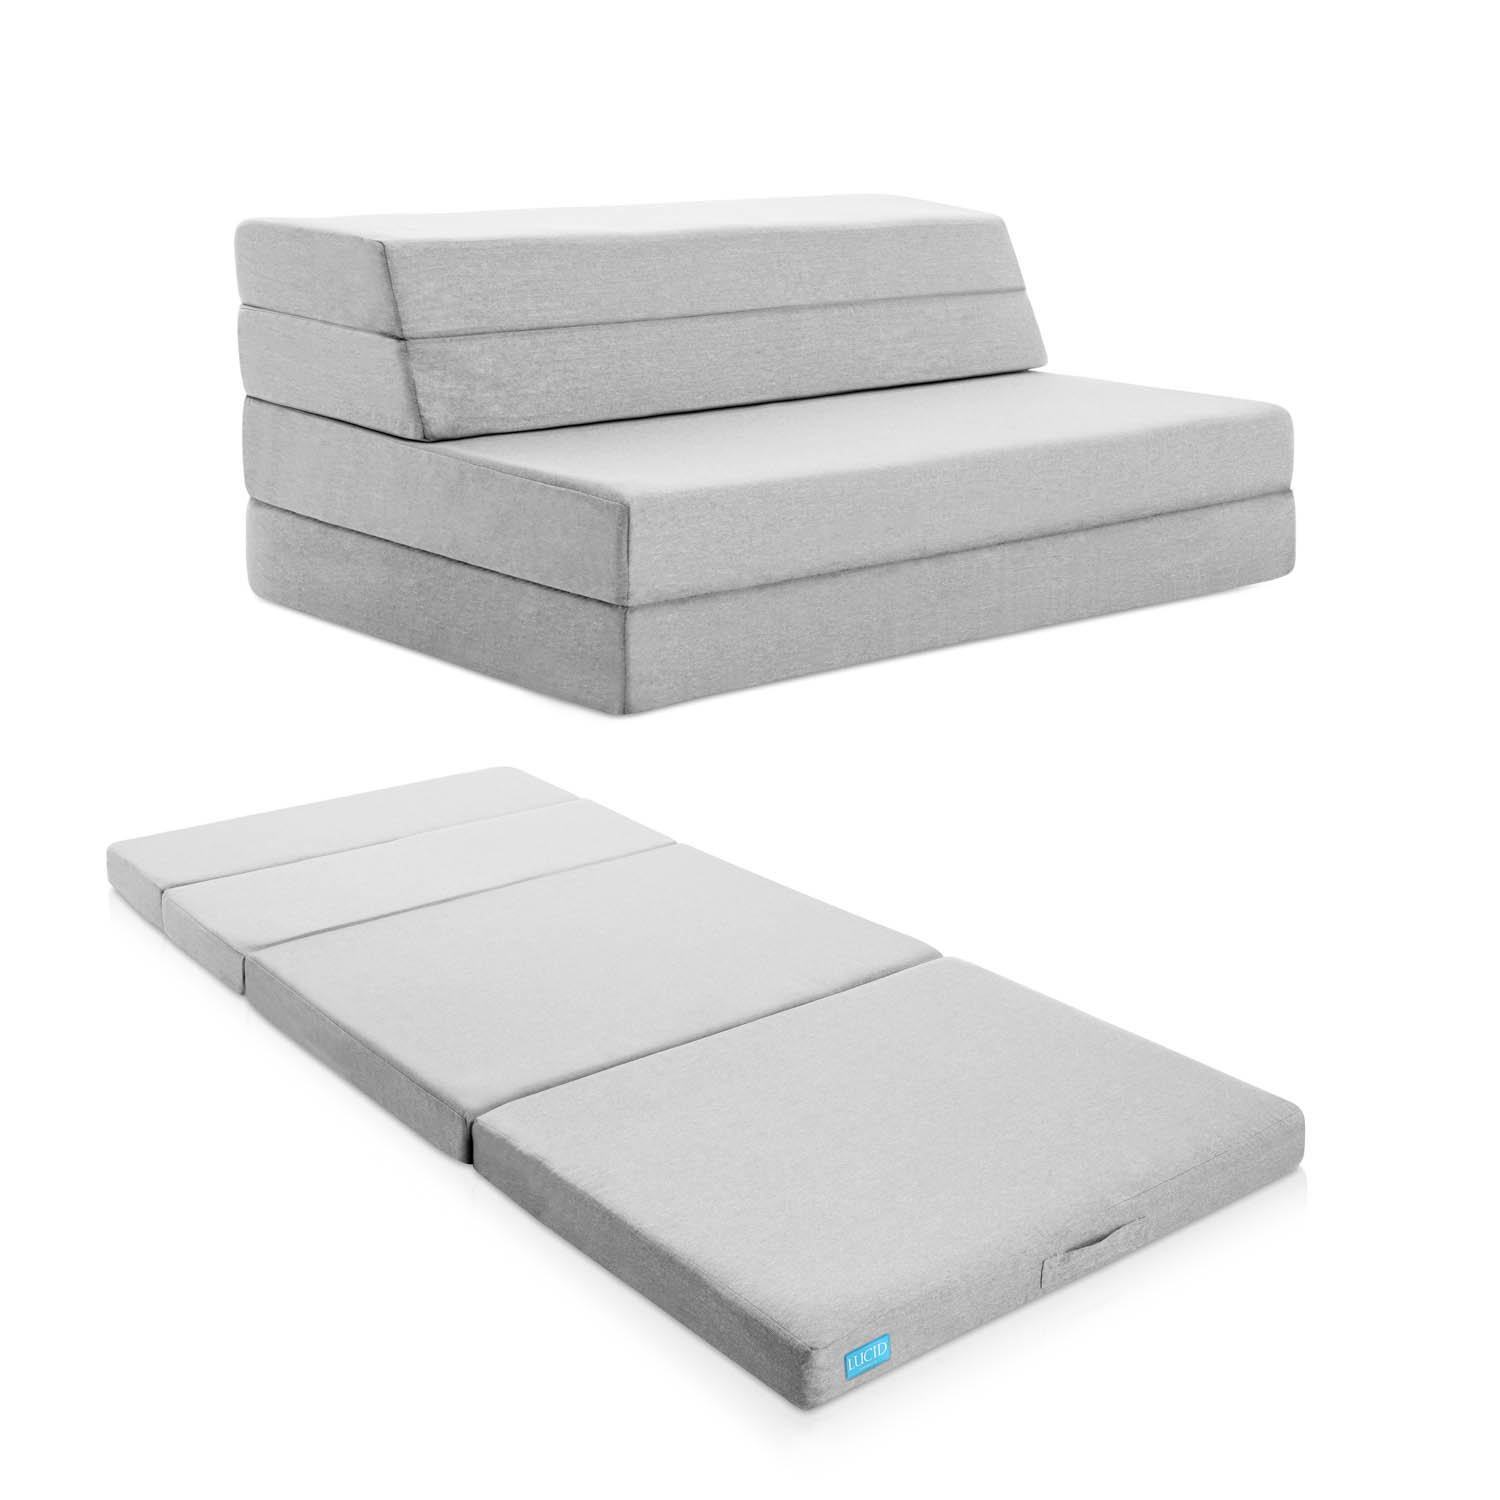 Lucid 4'' Folding Mattress & Sofa with Removable Indoor/Outdoor Fabric Cover, Queen by LUCID